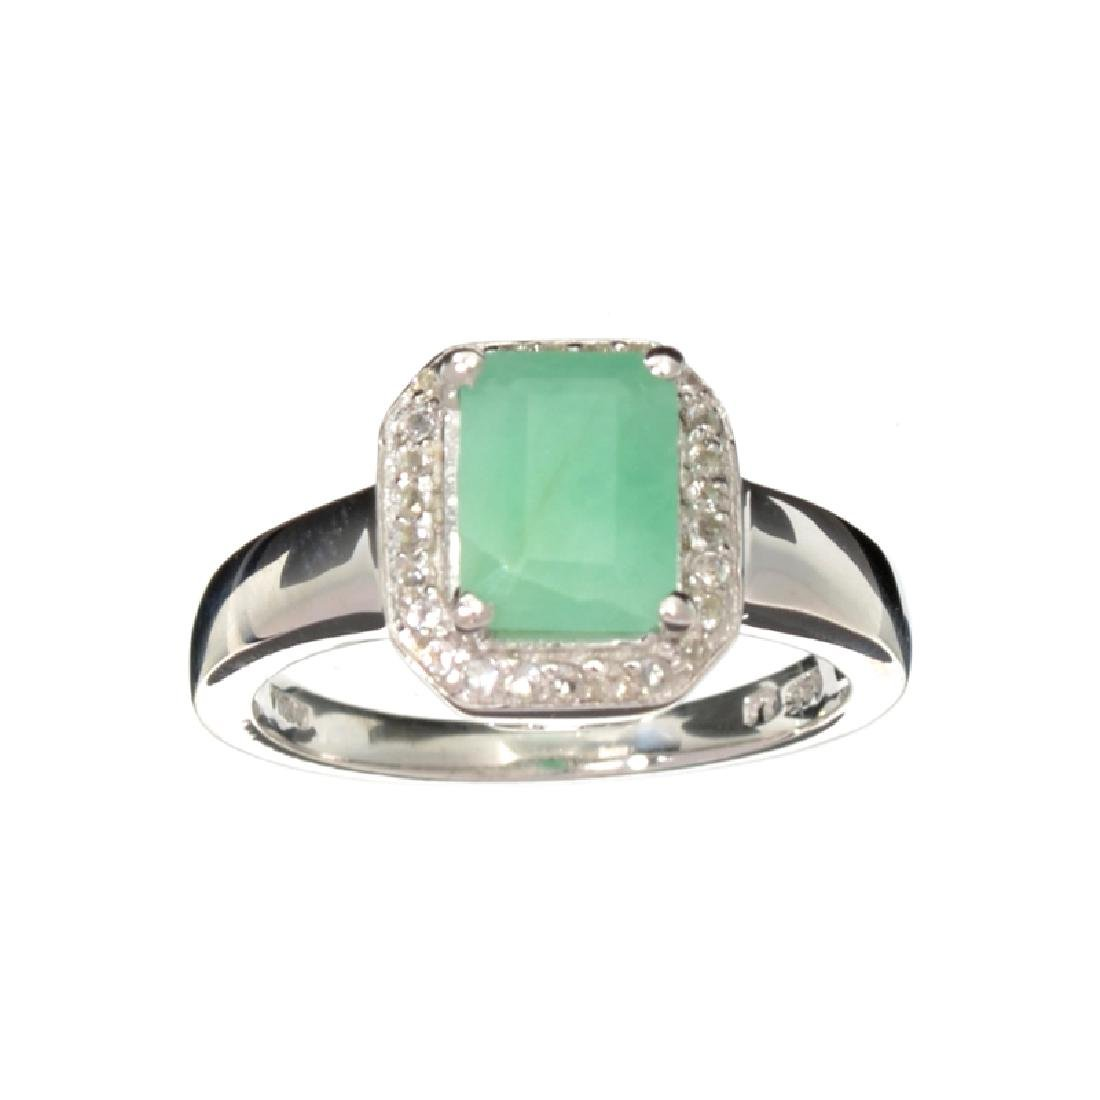 APP: 0.8k Fine Jewelry 1.73CT Green Emerald And White